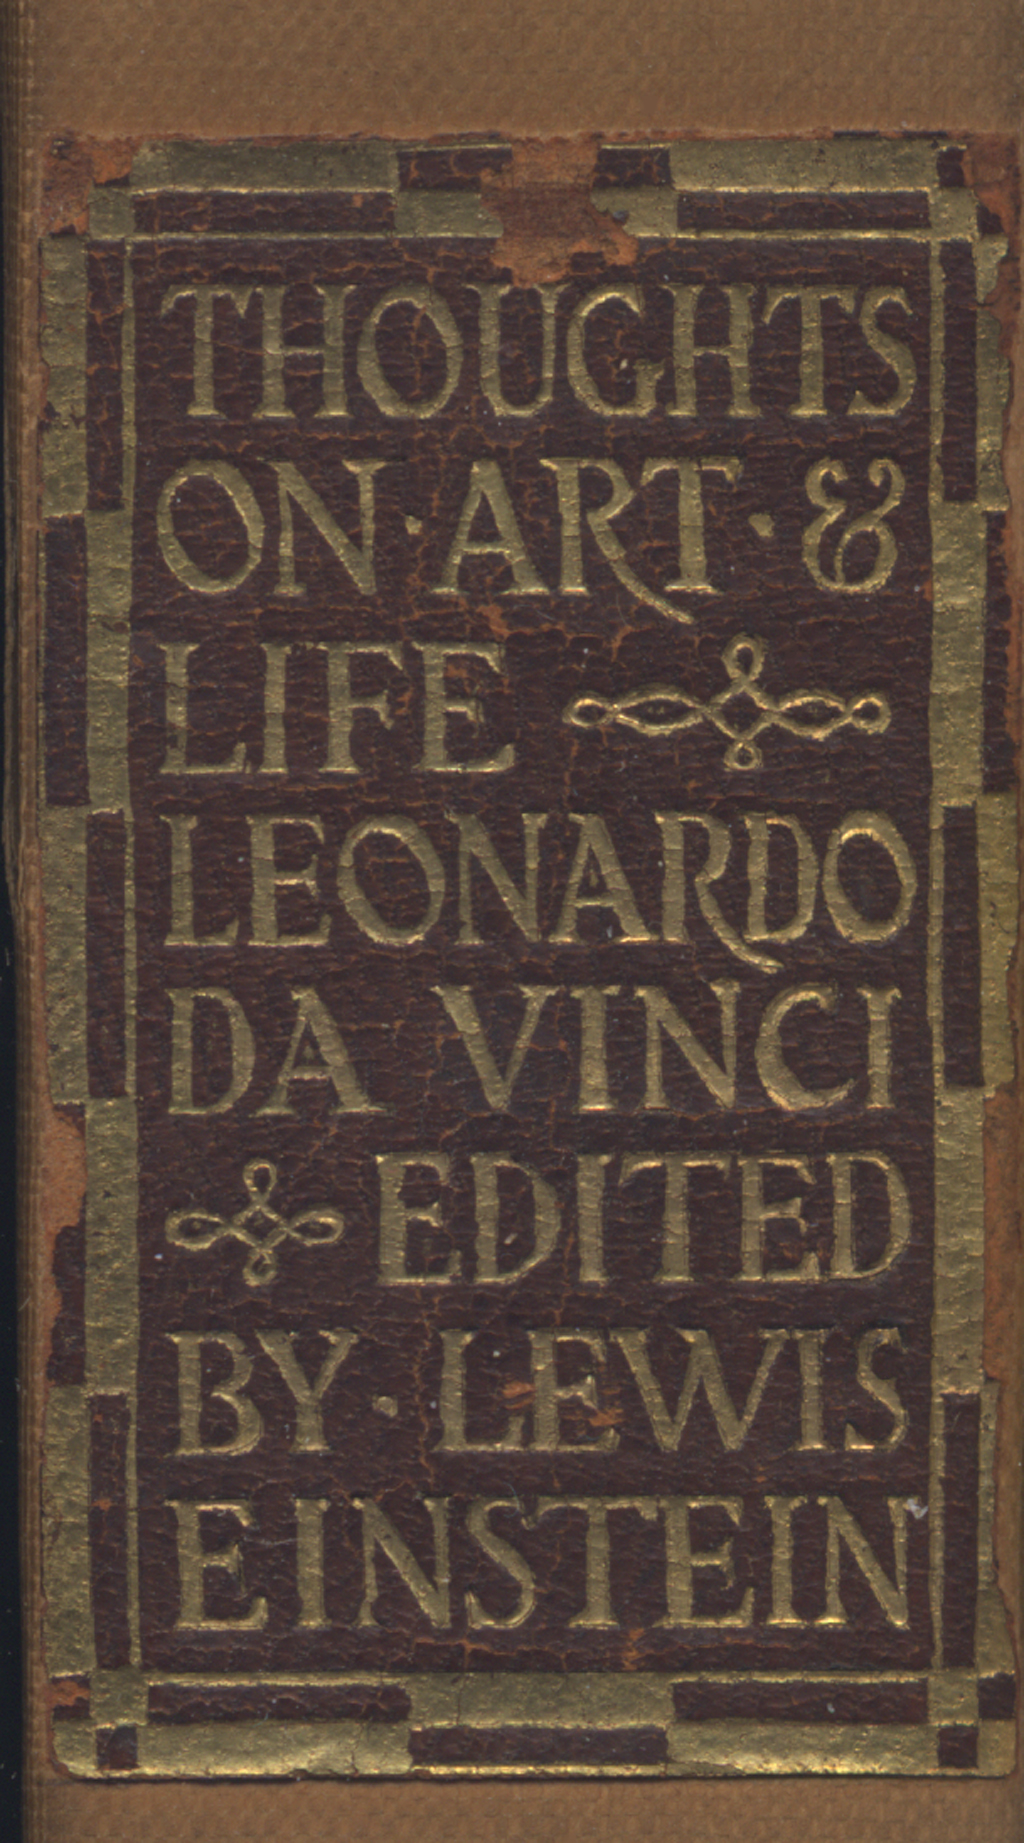 Label from spine of Thoughts on Art and Life by Leonardo da Vinci (Boston: The Merrymount Press, 1906). Lettering by T.M. Cleland.